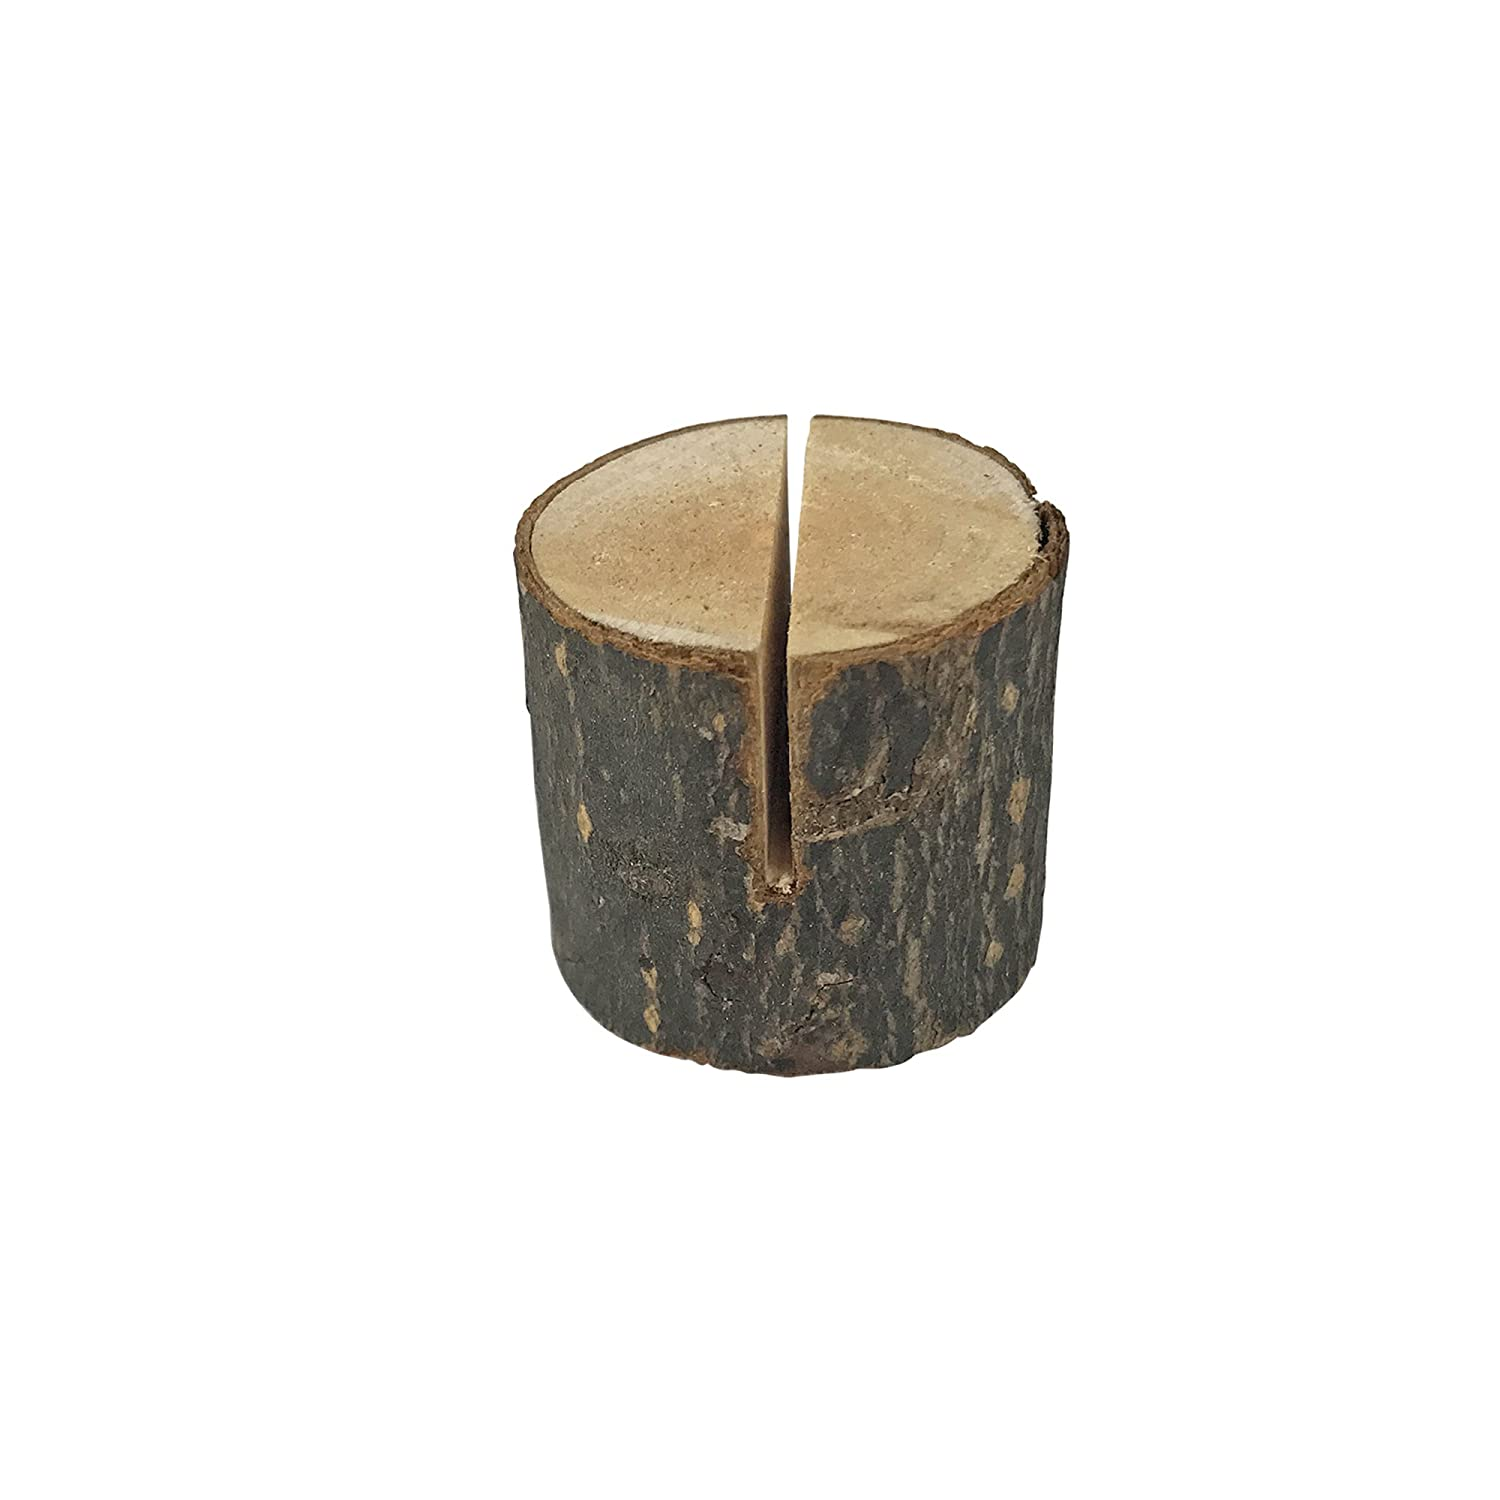 10 Pcs Rustic Wooden Place Card Table Number Wedding Card Holders